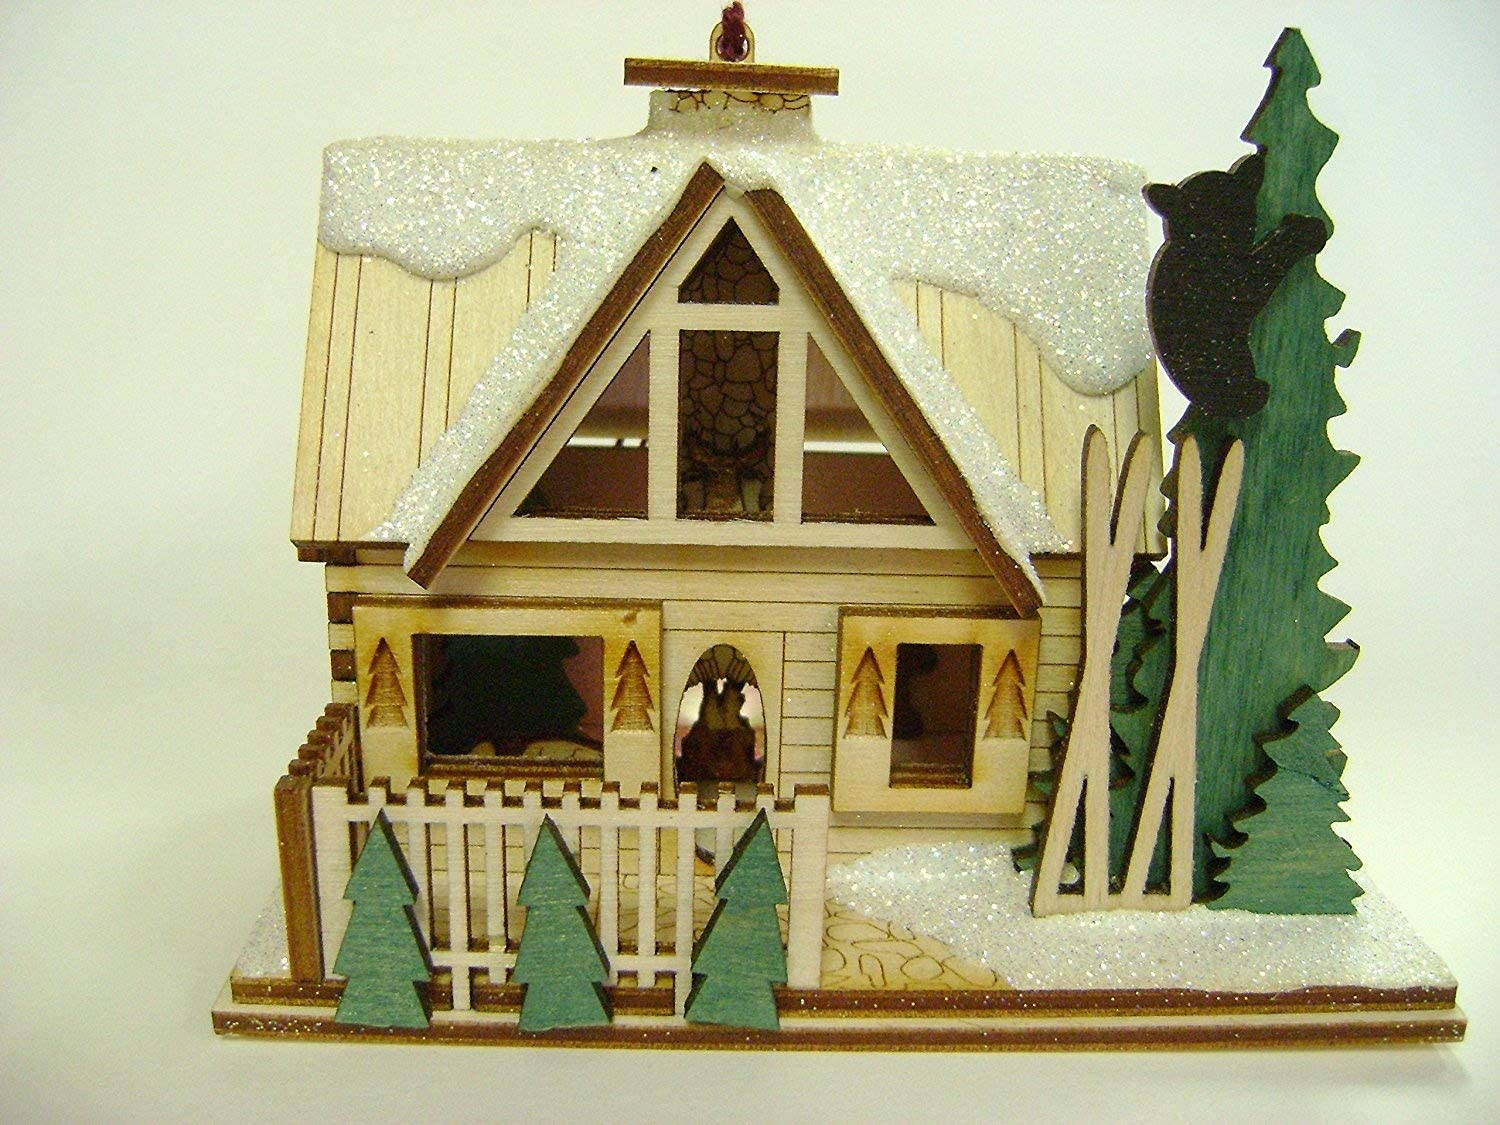 Amazon Com Ginger Cottages Santa S Ski Lodge Gc126 Miniature Collectable Building For Christmas And Holiday Displays Wood Table Top Display Or Ornament Hand Crafted In The Richmond Virginia Usa Area Home